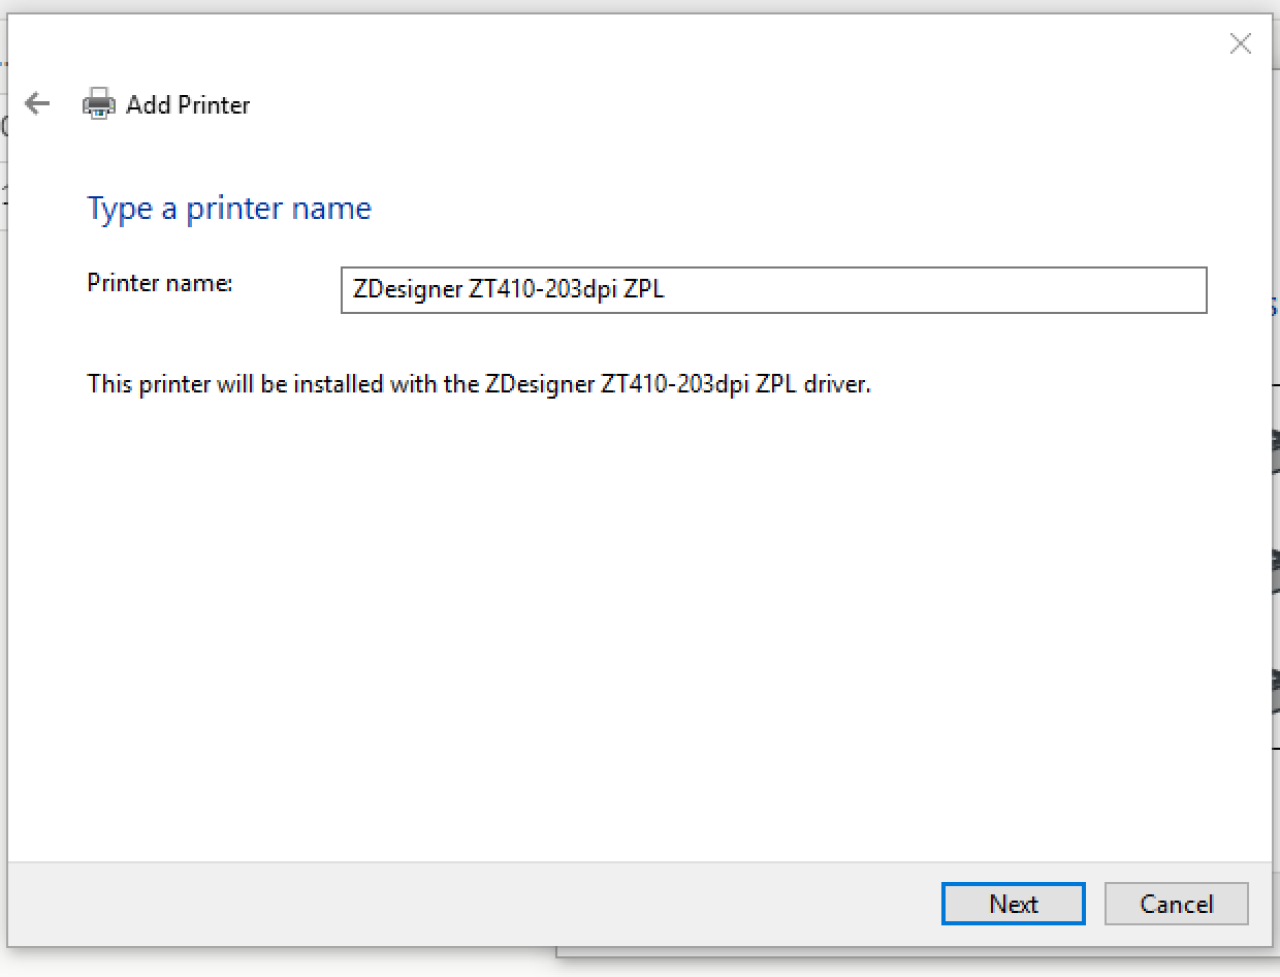 Type a printer name screen